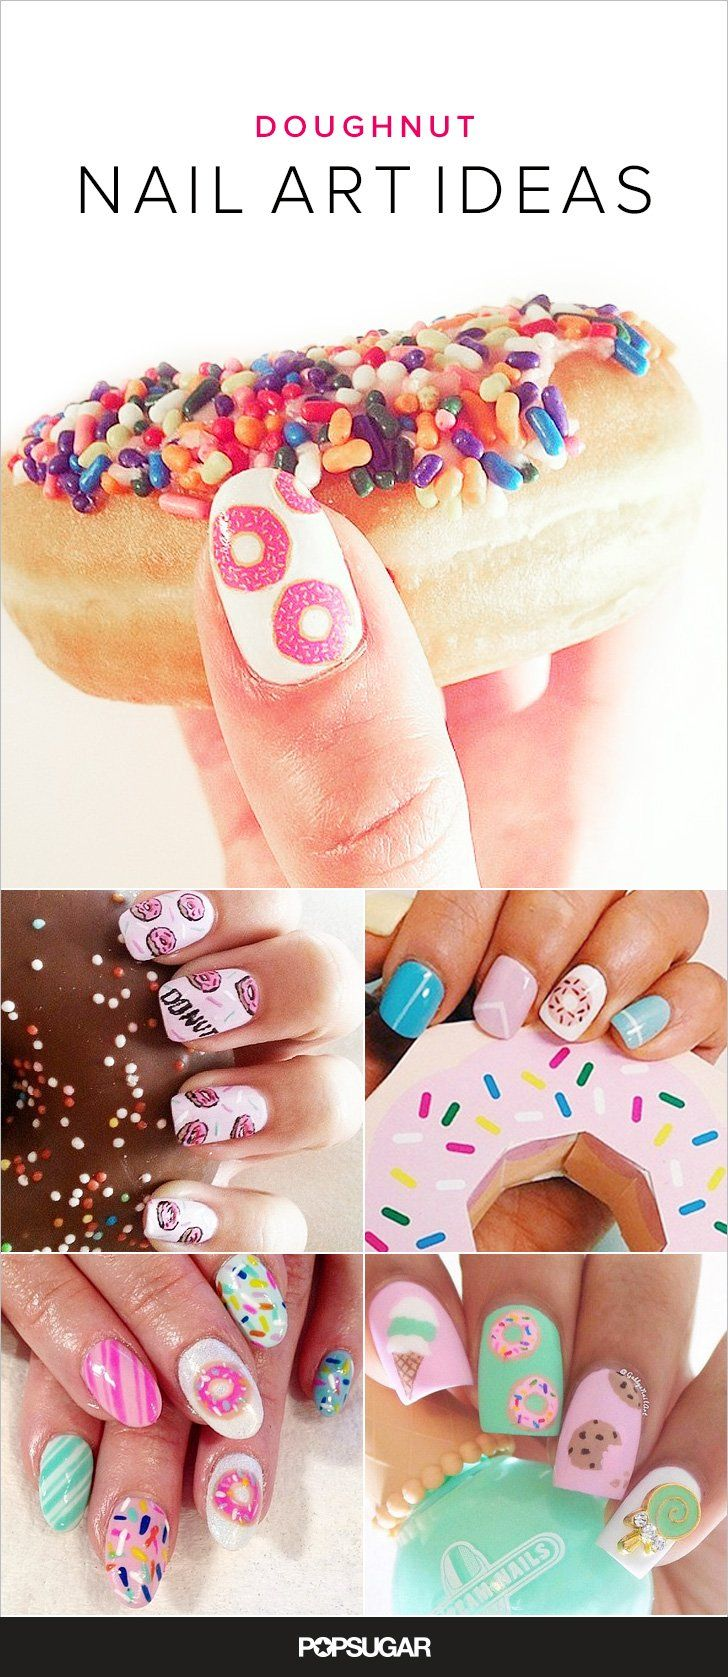 doughnut nail art designs that will satisfy your sweet tooth in